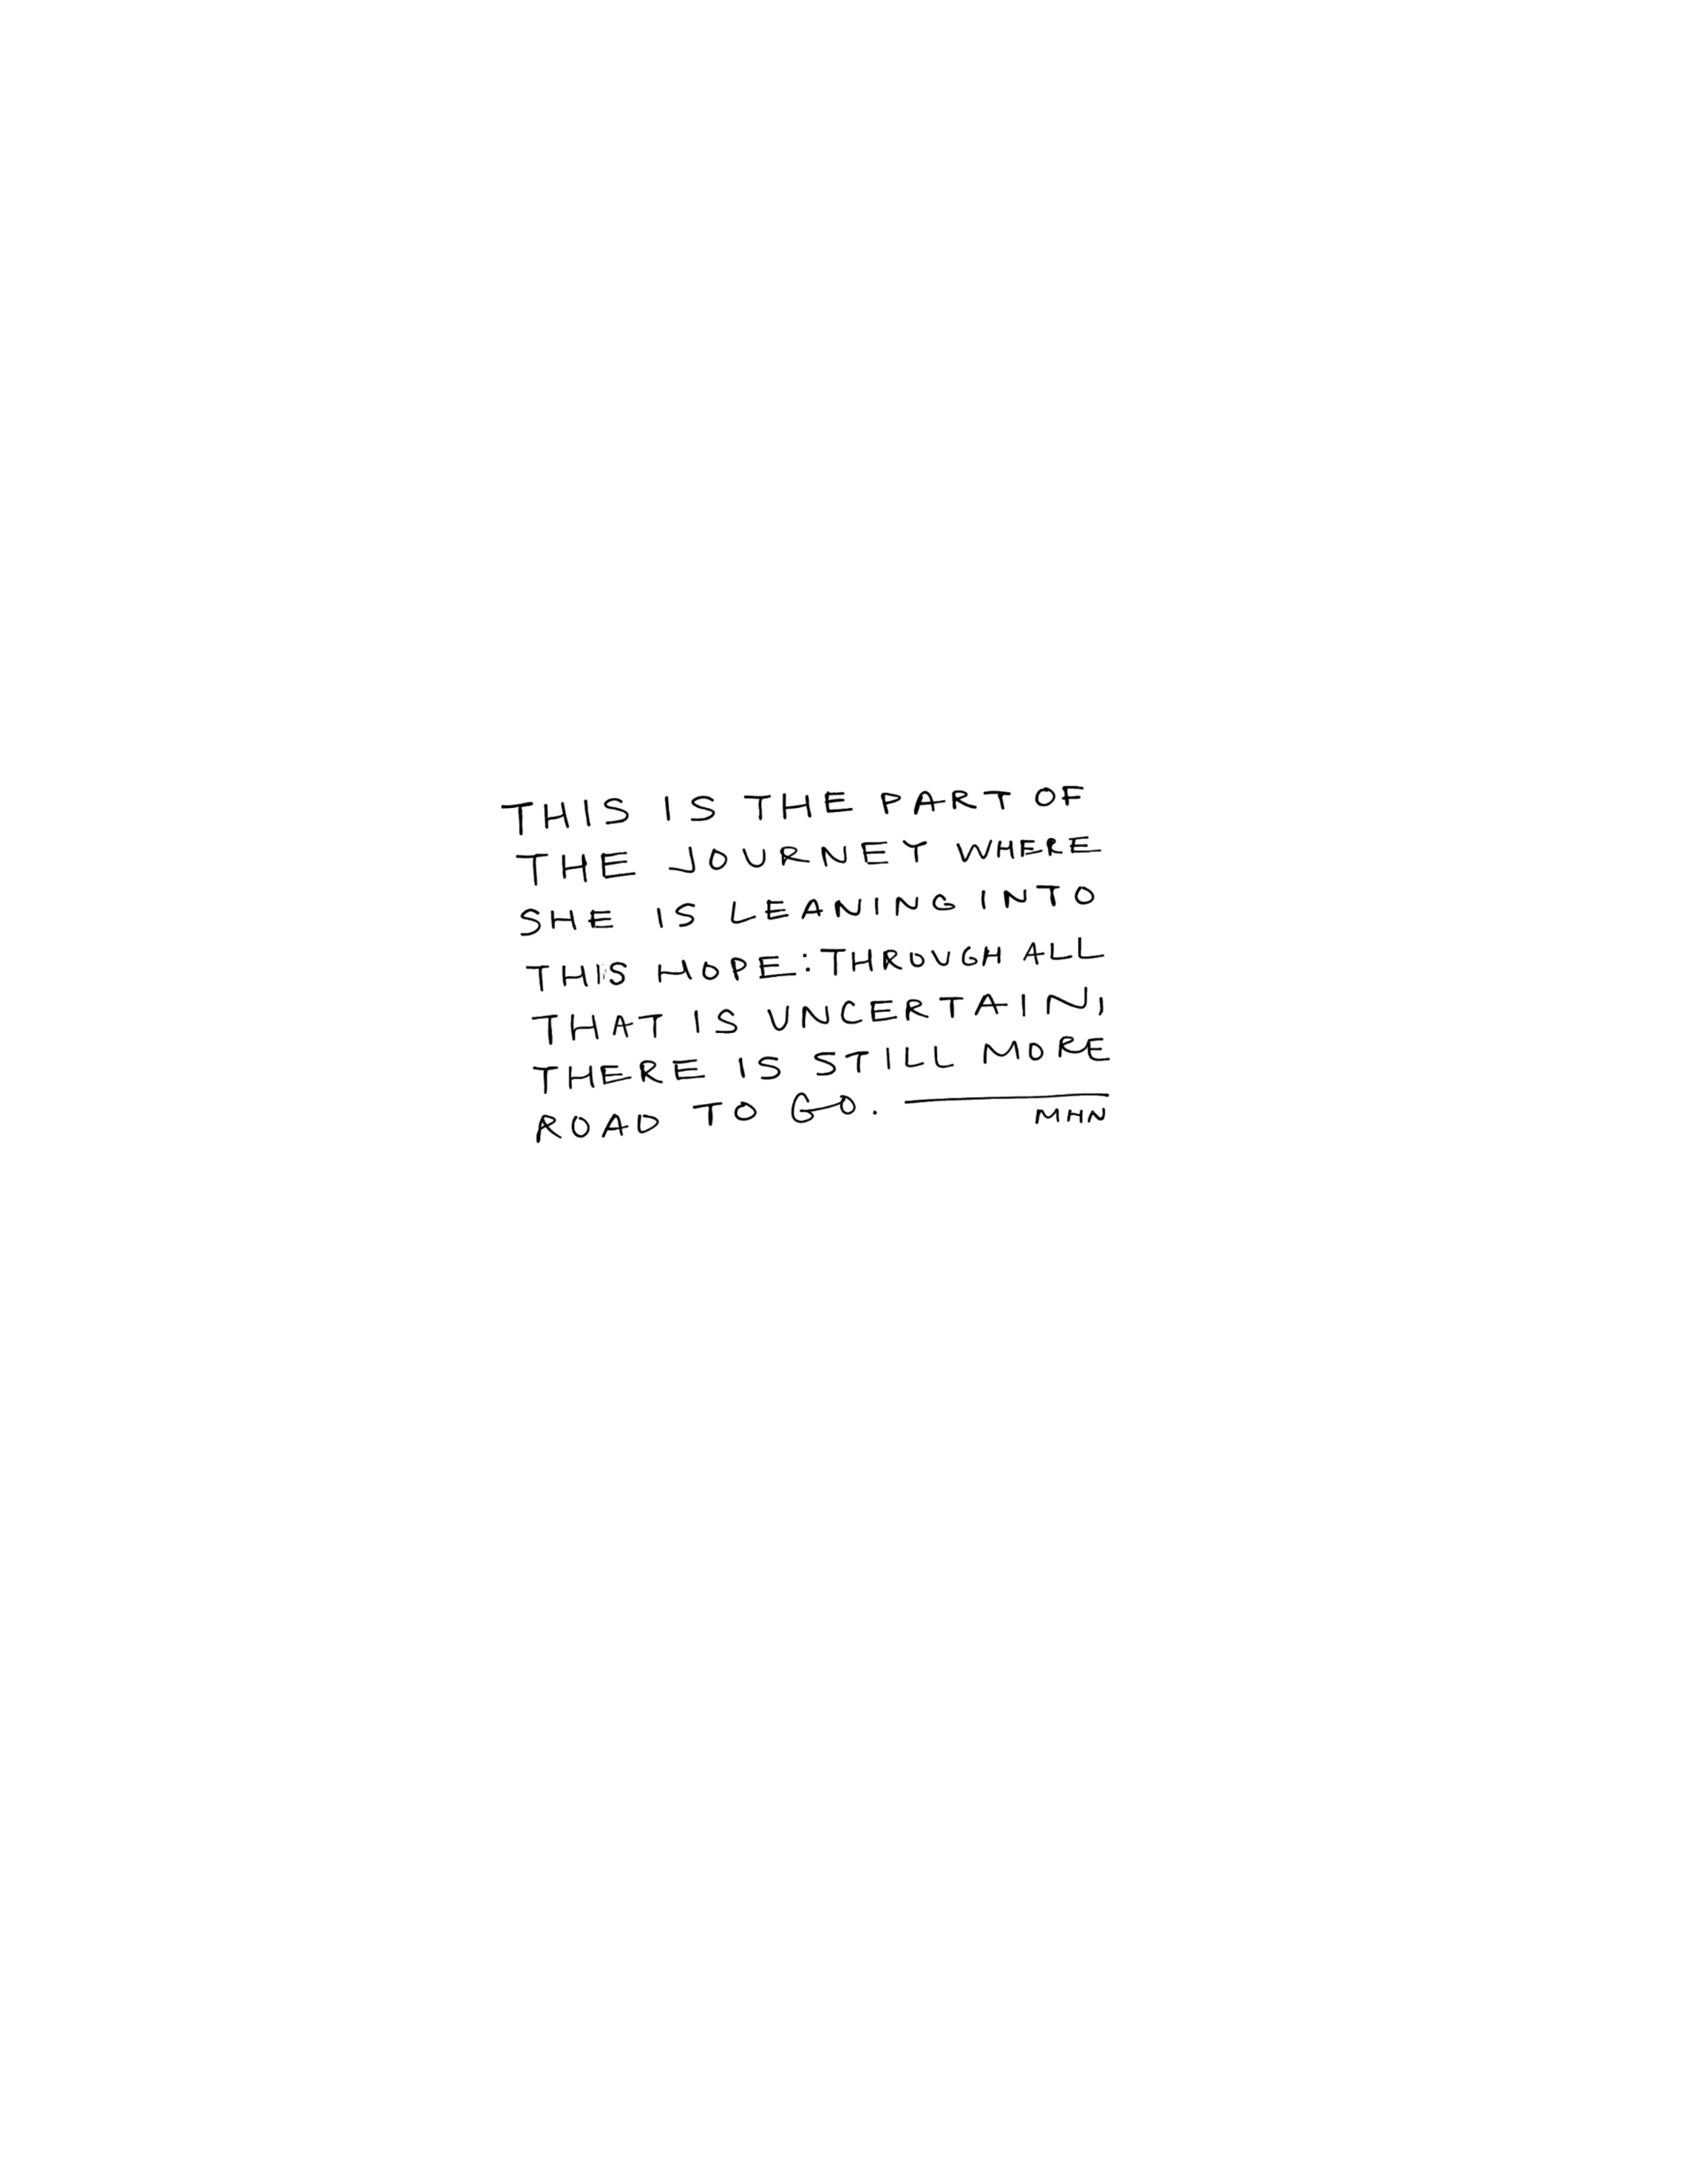 20190308(1).png